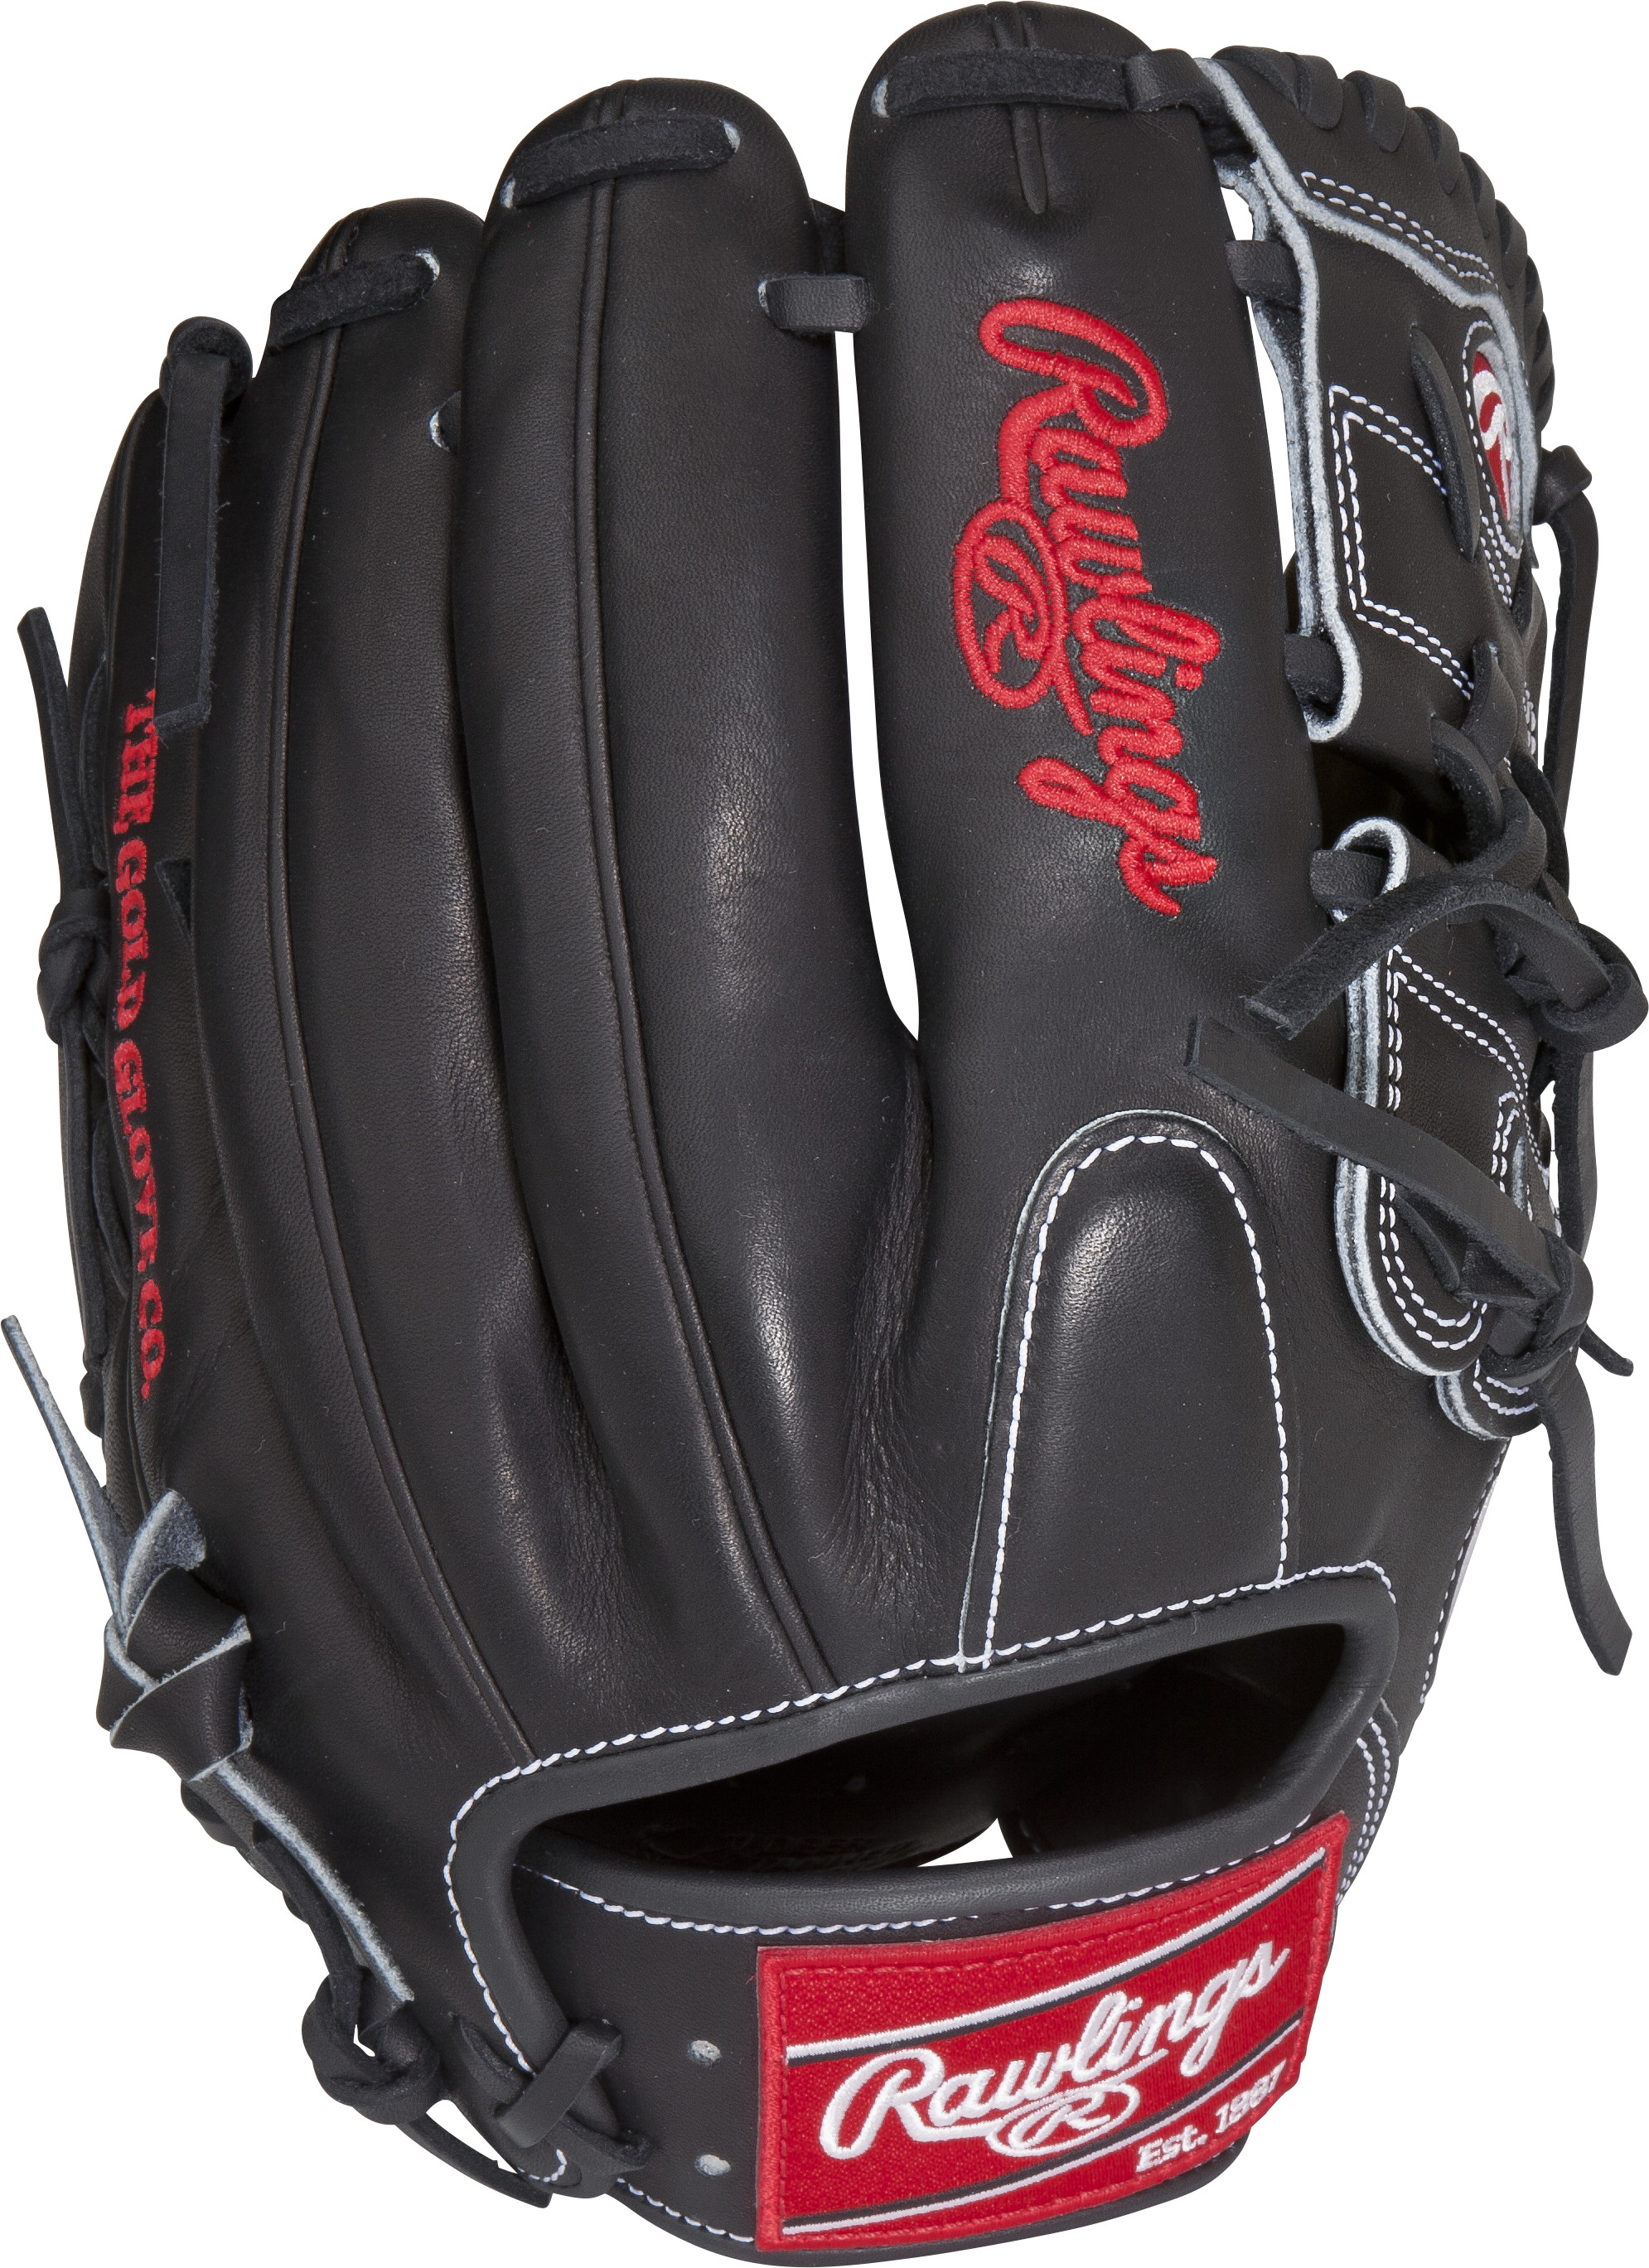 http://www.bestbatdeals.com/images/gloves/rawlings/PRO206-9JB_back.jpg